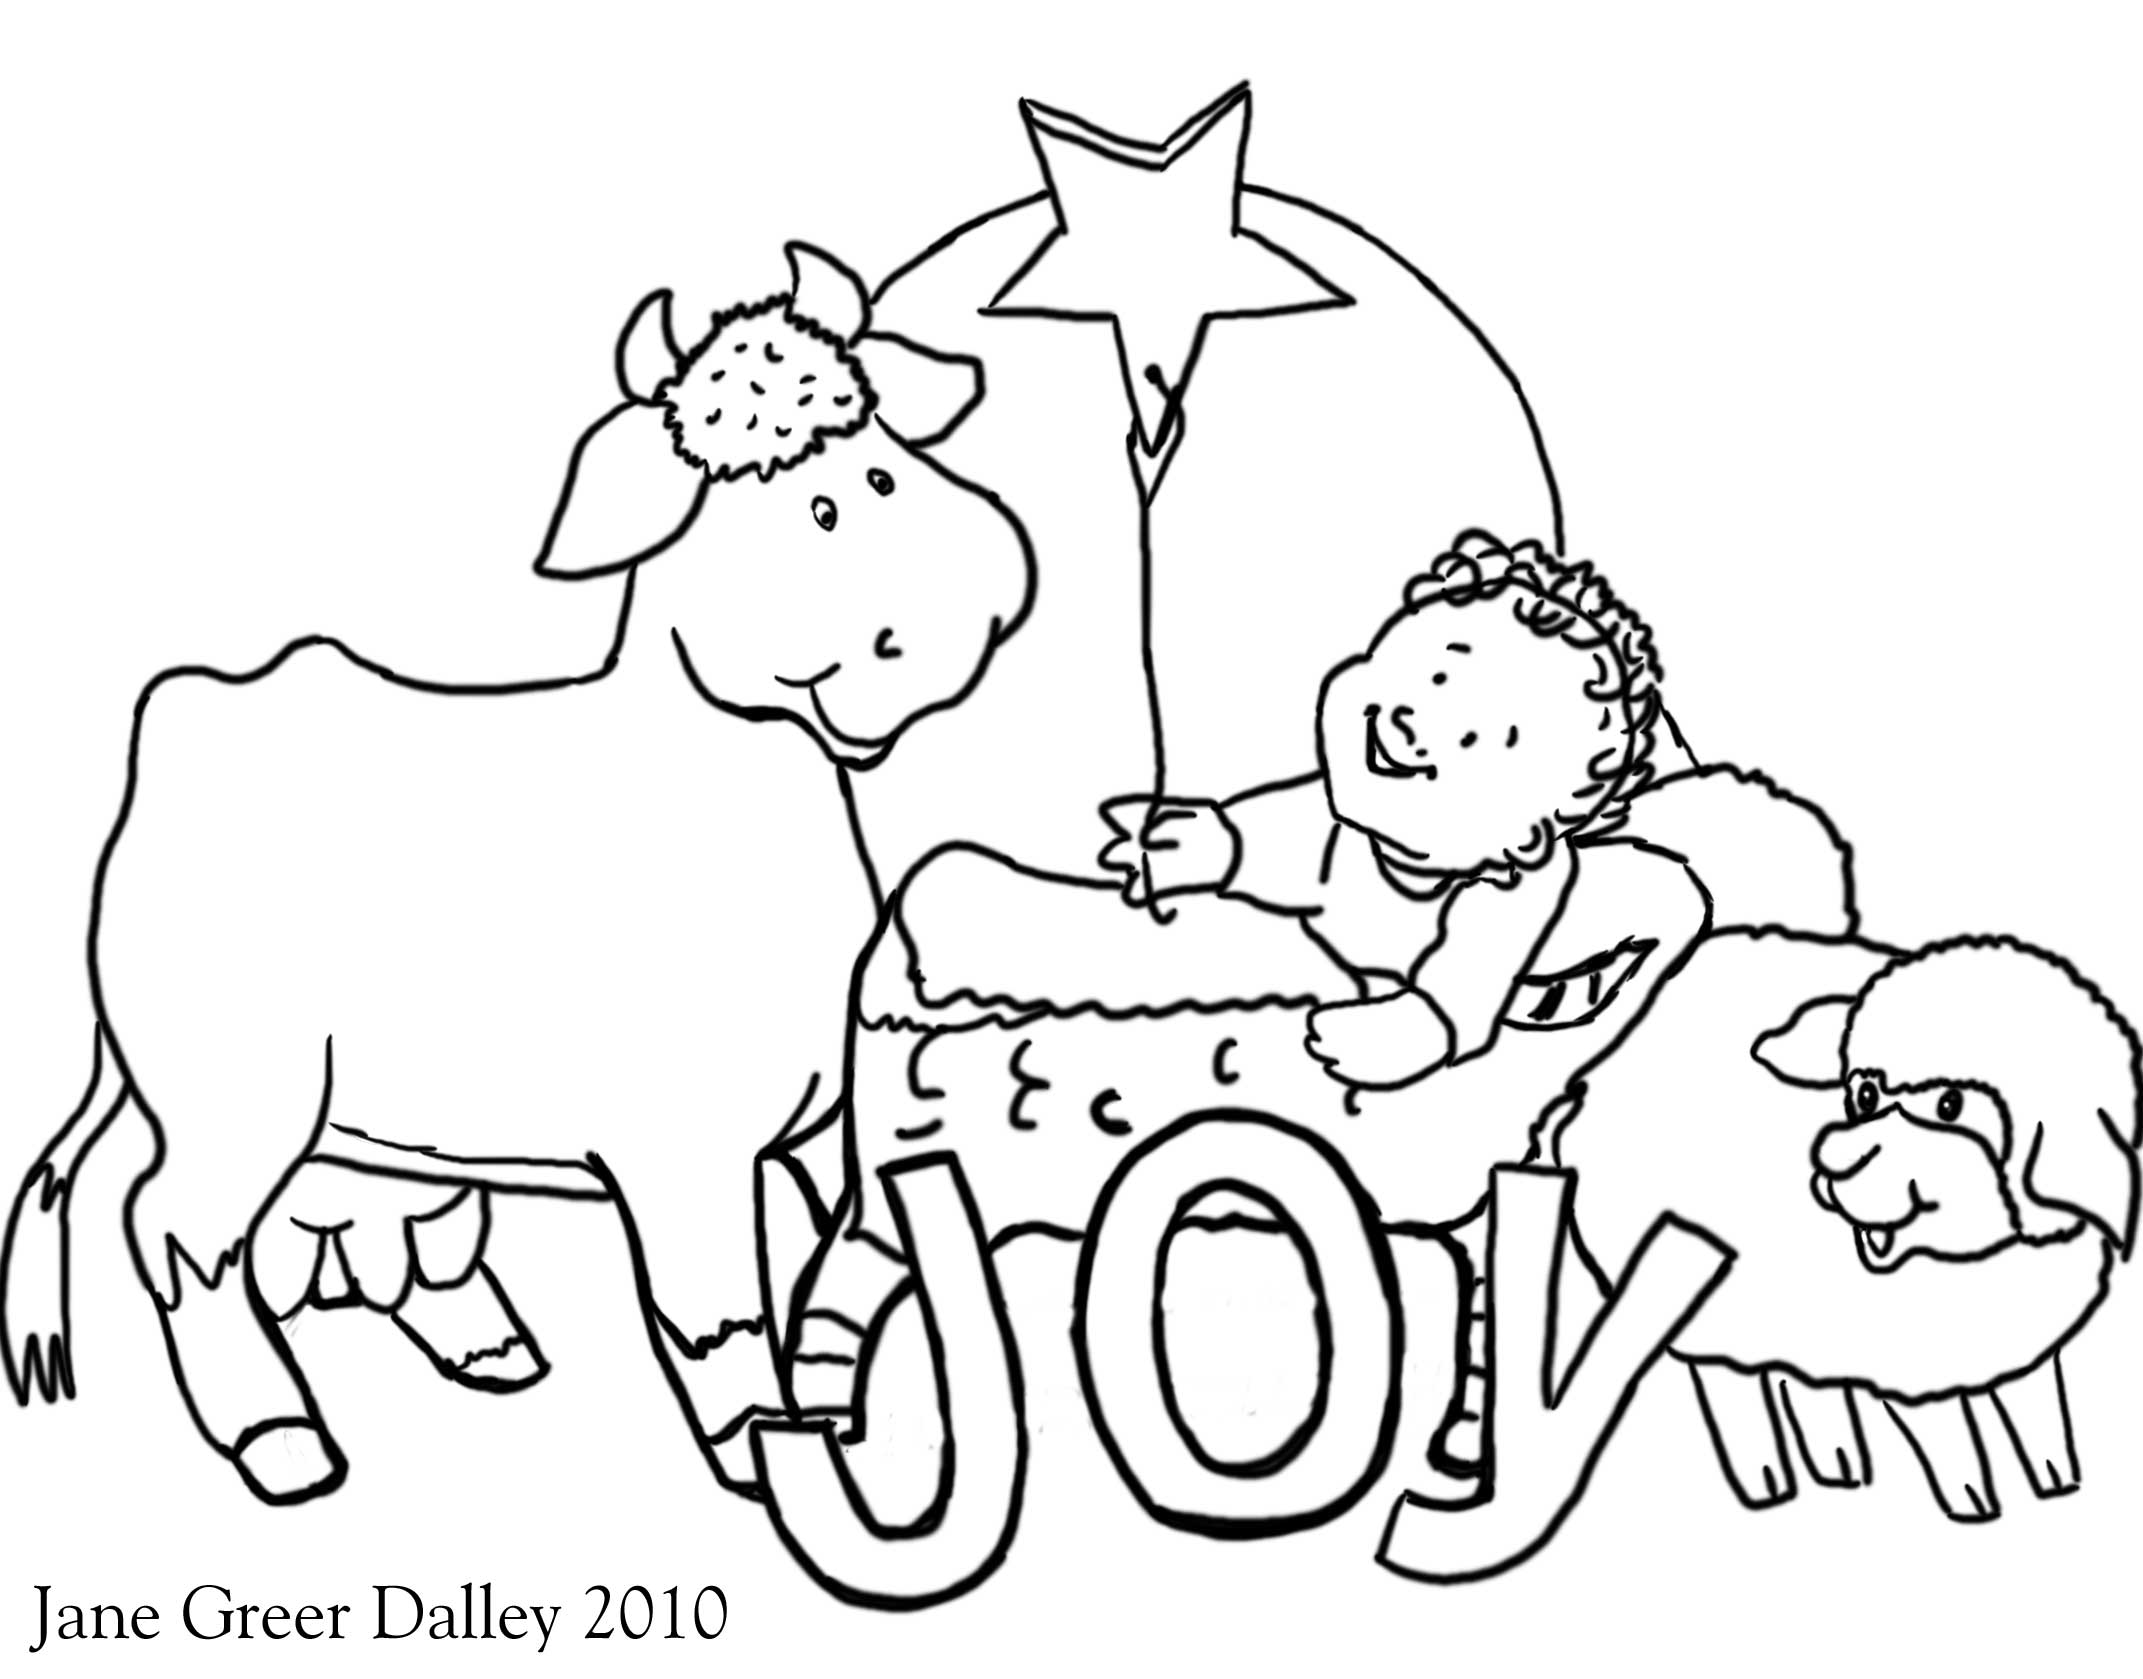 Manger Coloring Pages Printable at GetDrawings.com | Free ...